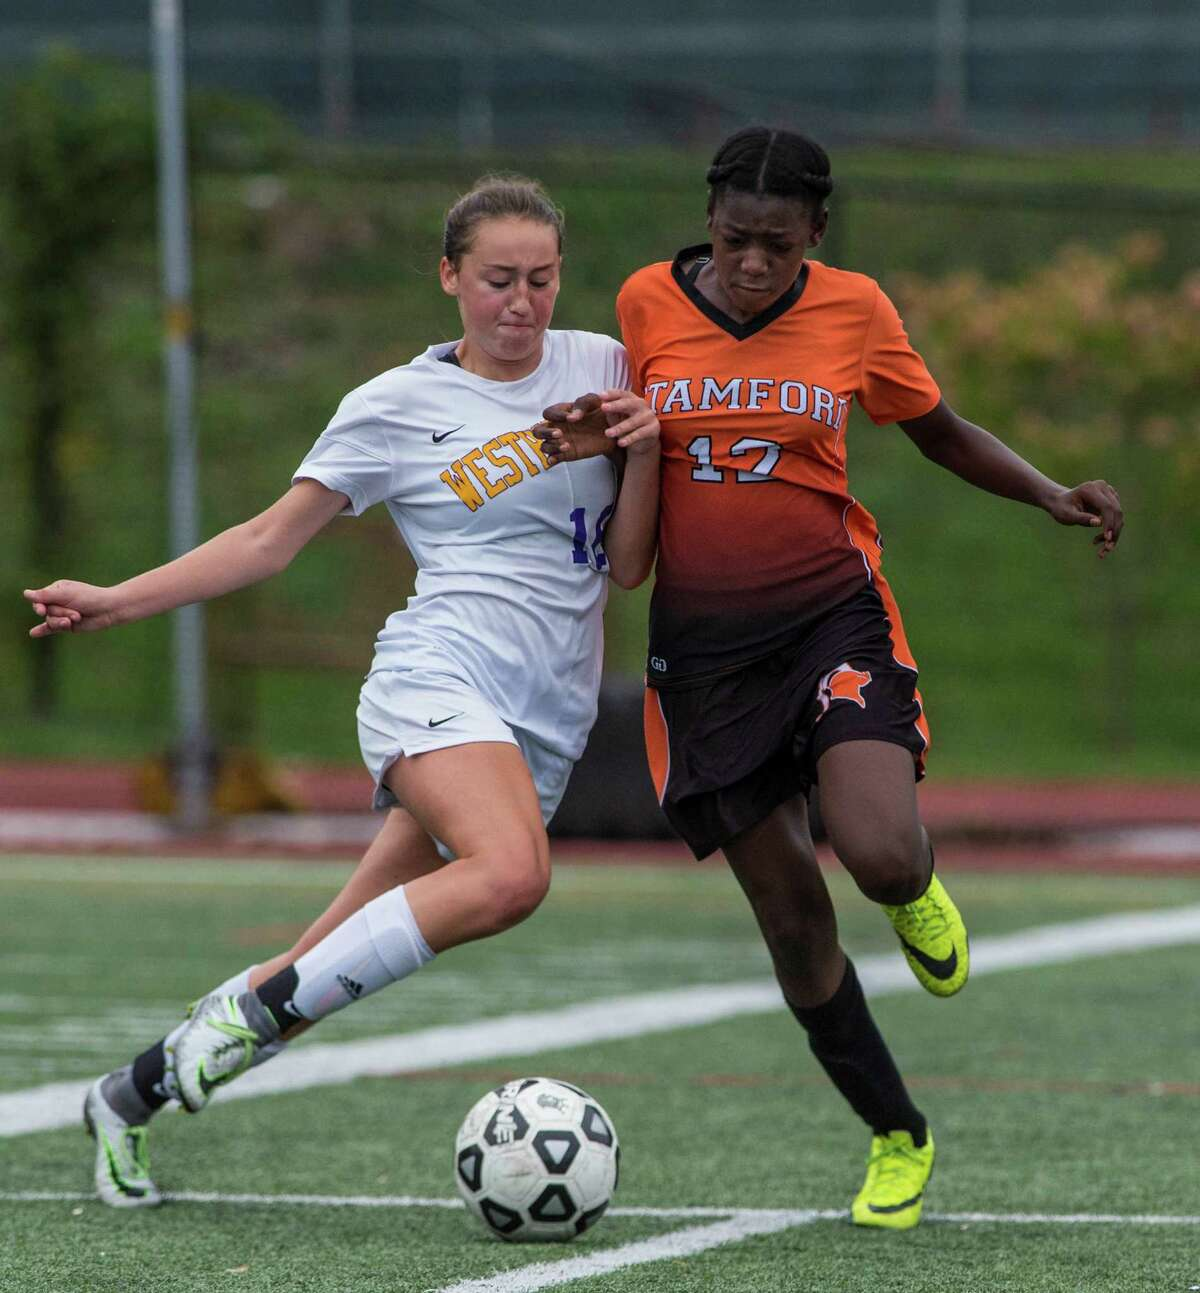 Westhill's Lilly Gubernick, left, and Stamford's Chanille Assevero battle for the ball during a girls soccer game played at Westhill High School in Stamford on Saturday. Westhill won the city championship, 3-0.